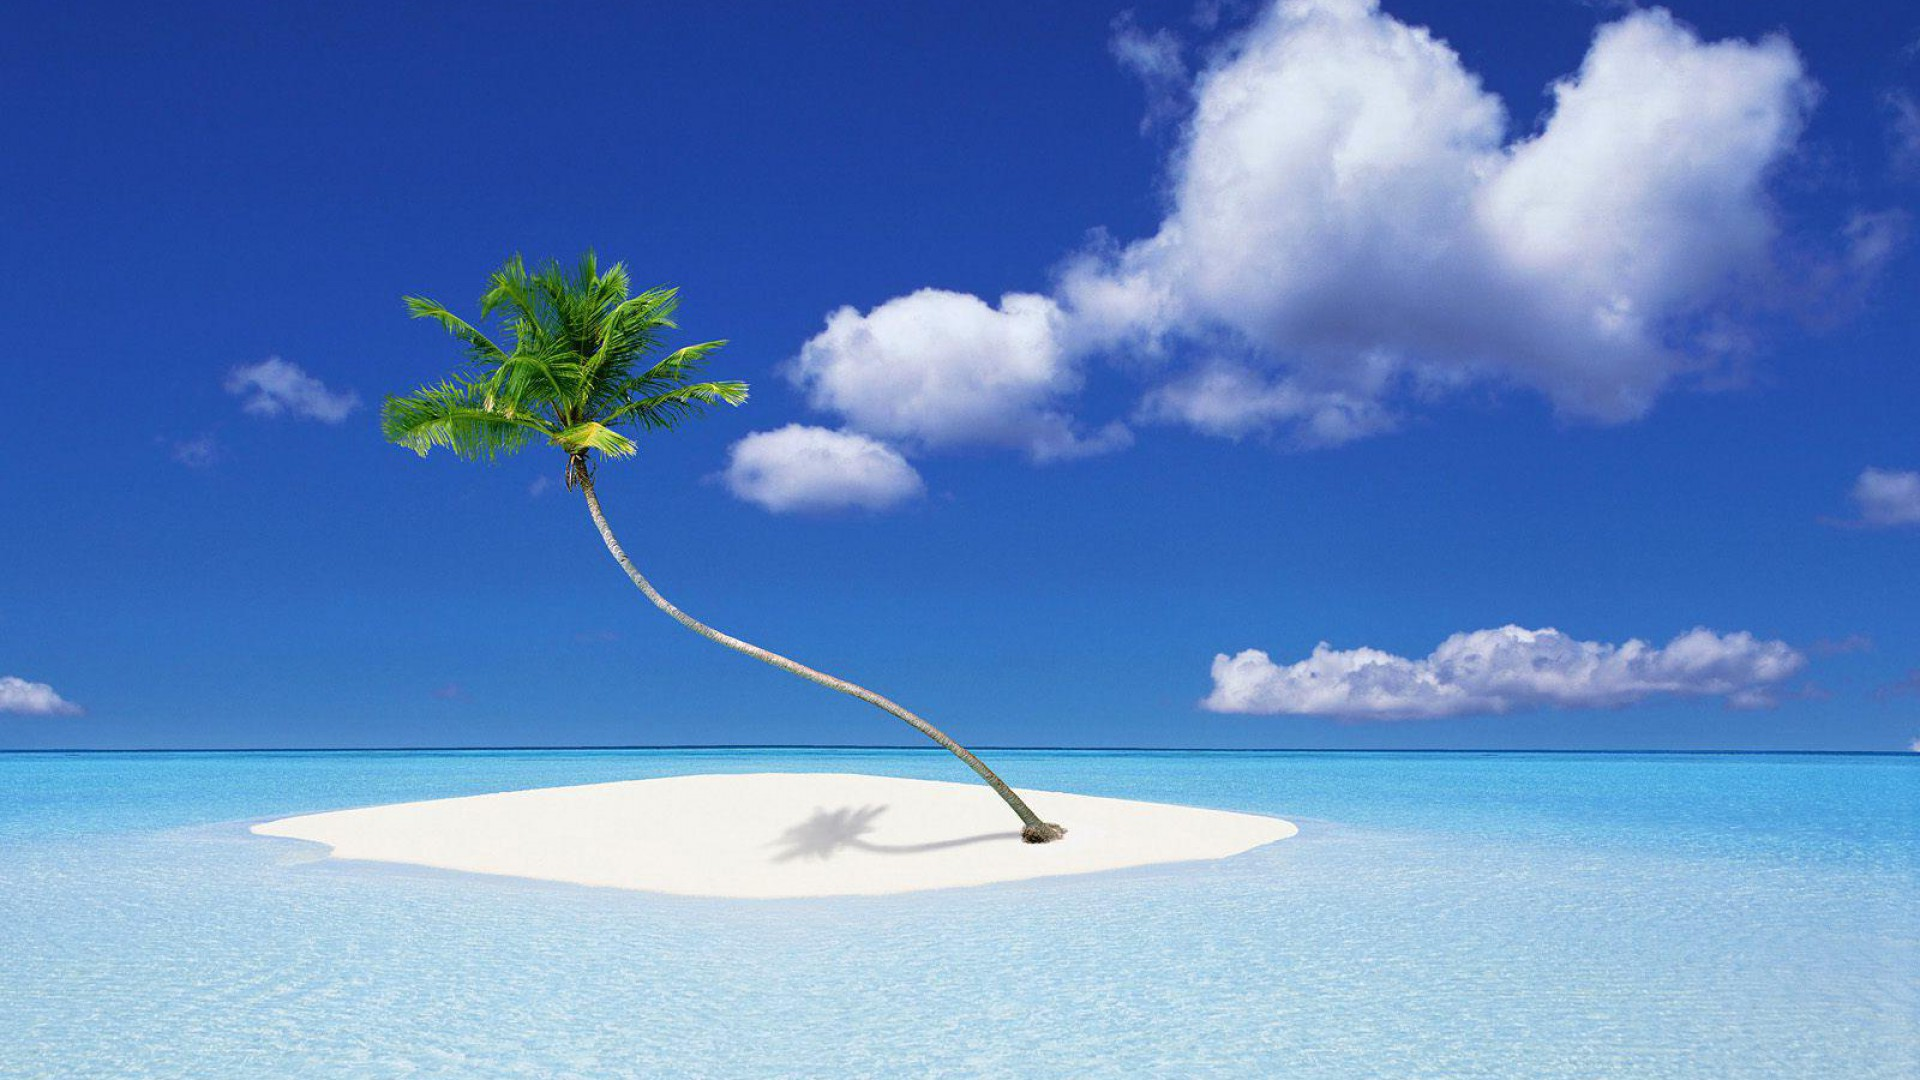 Remarkable Beach Small Palm Island Wallpaper 1920x1080px